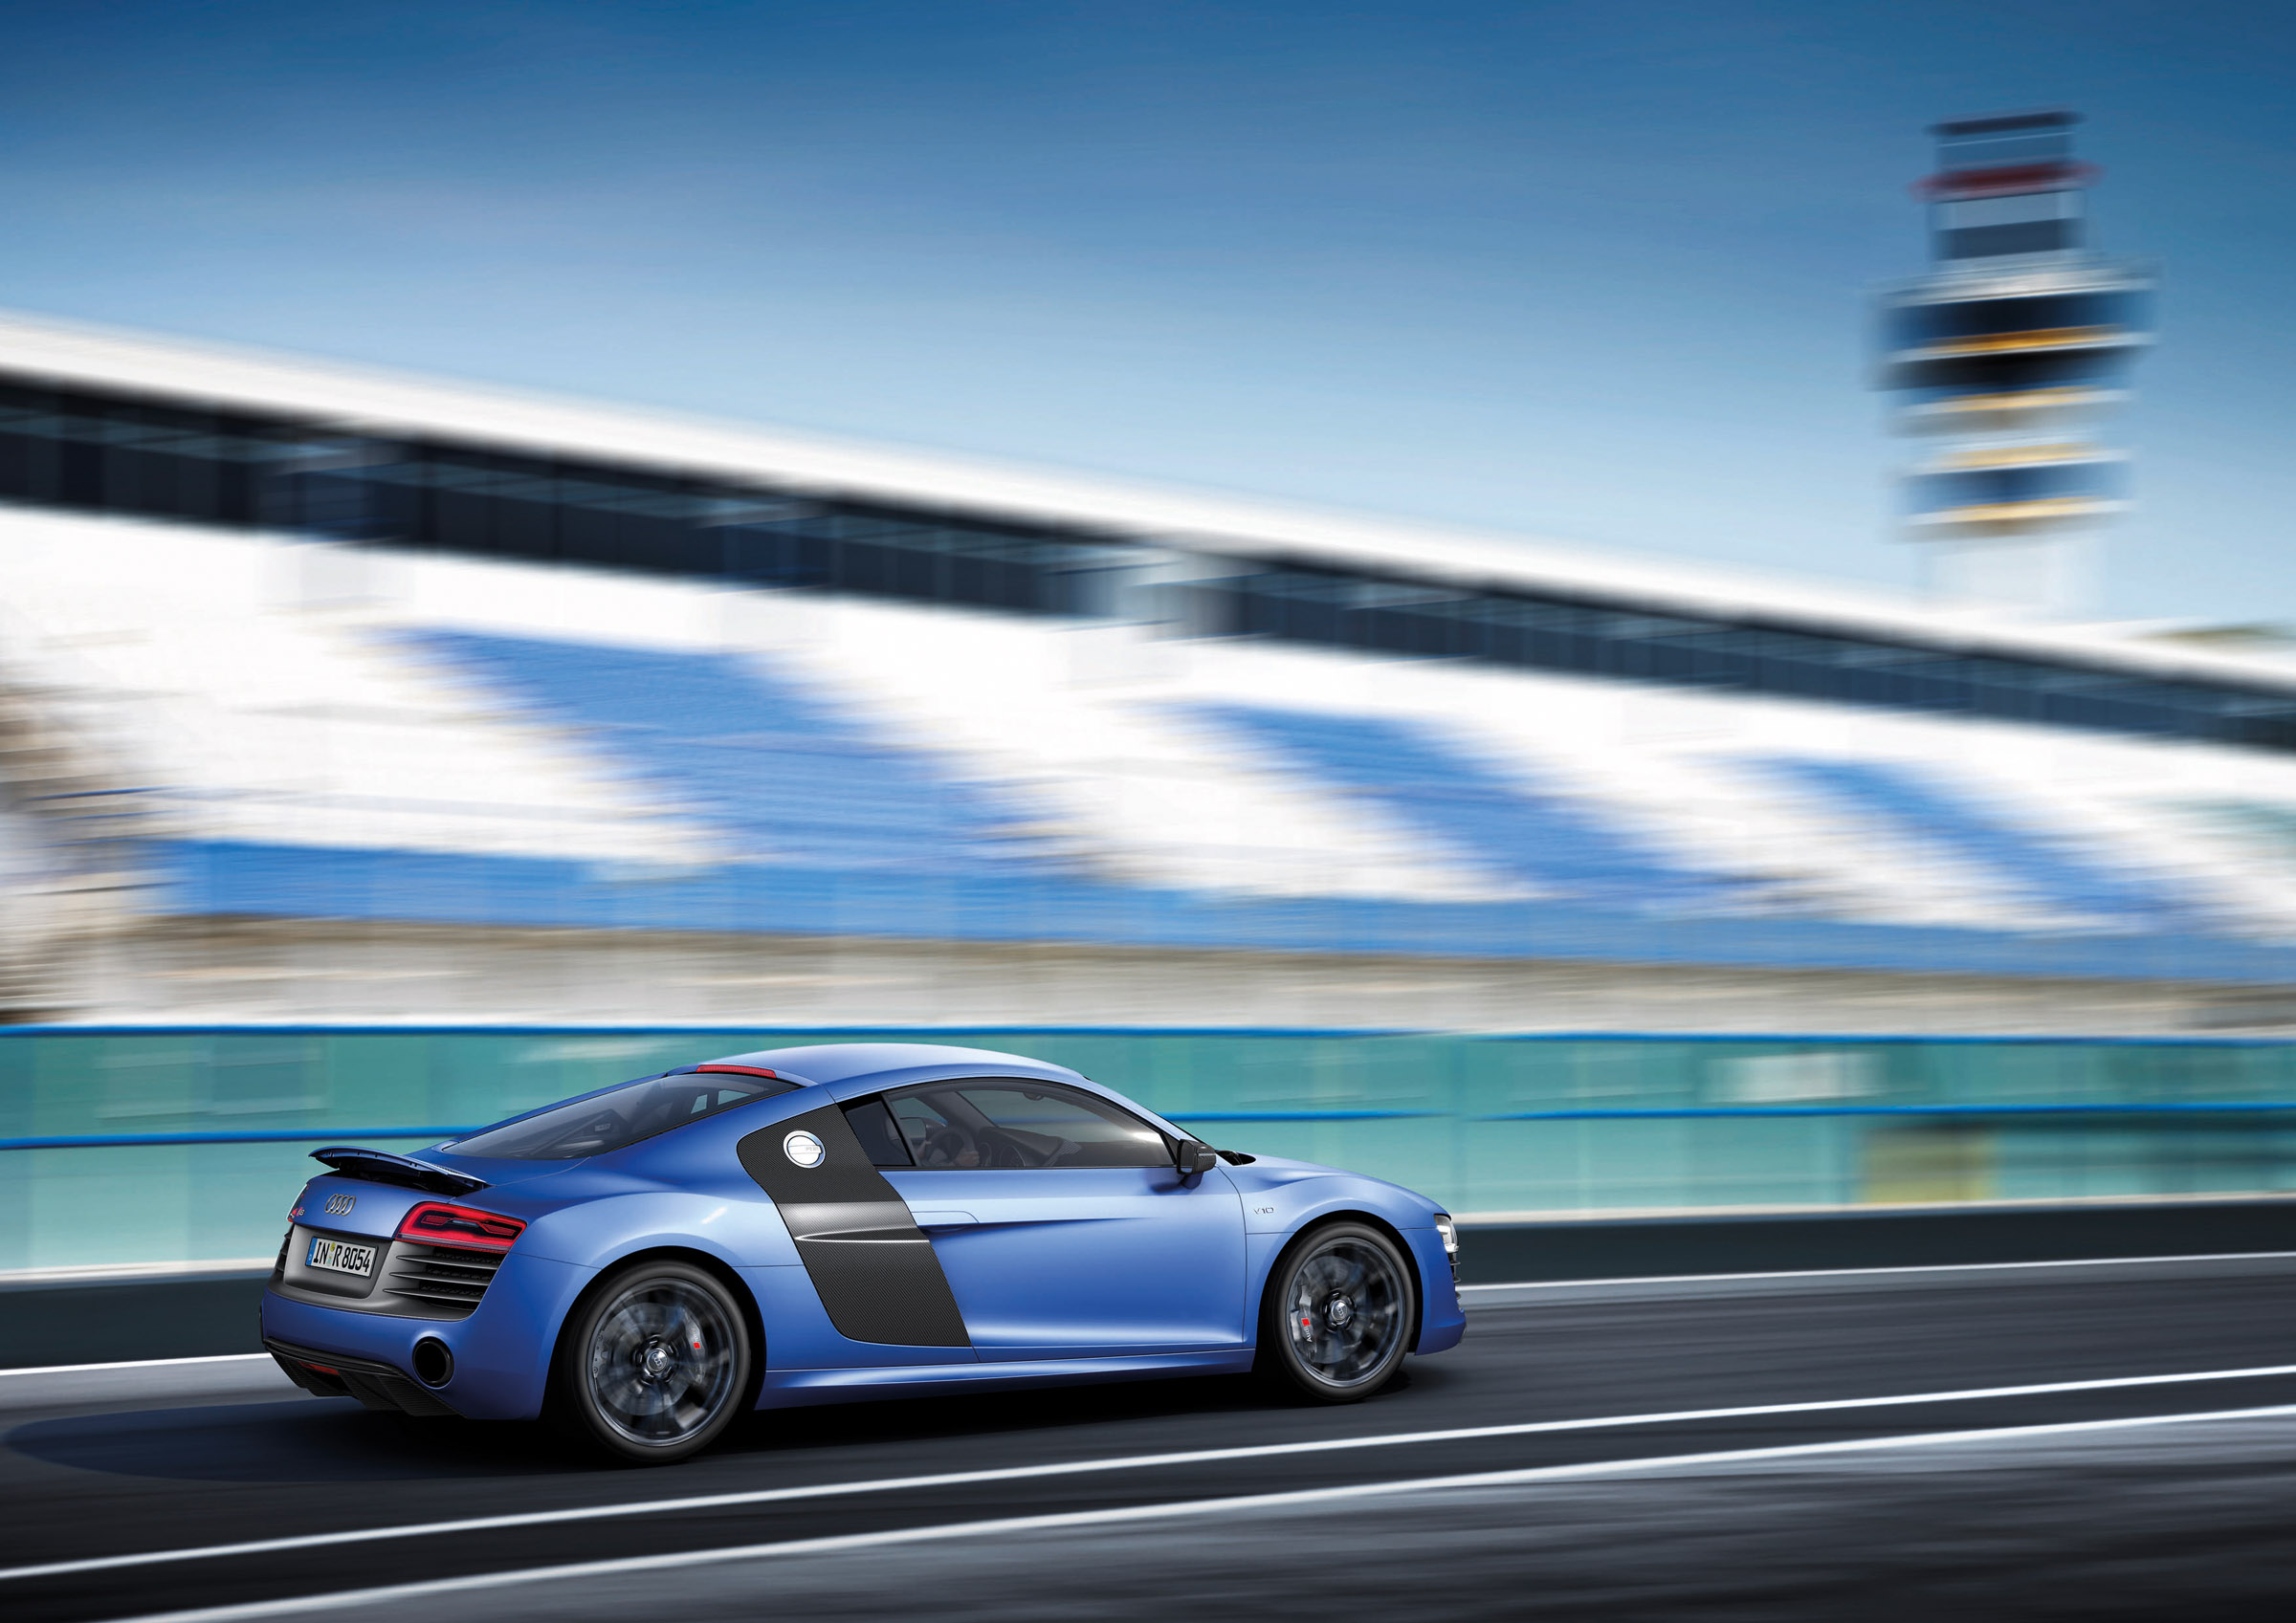 2013 Blue Audi R8 V10 plus Side View